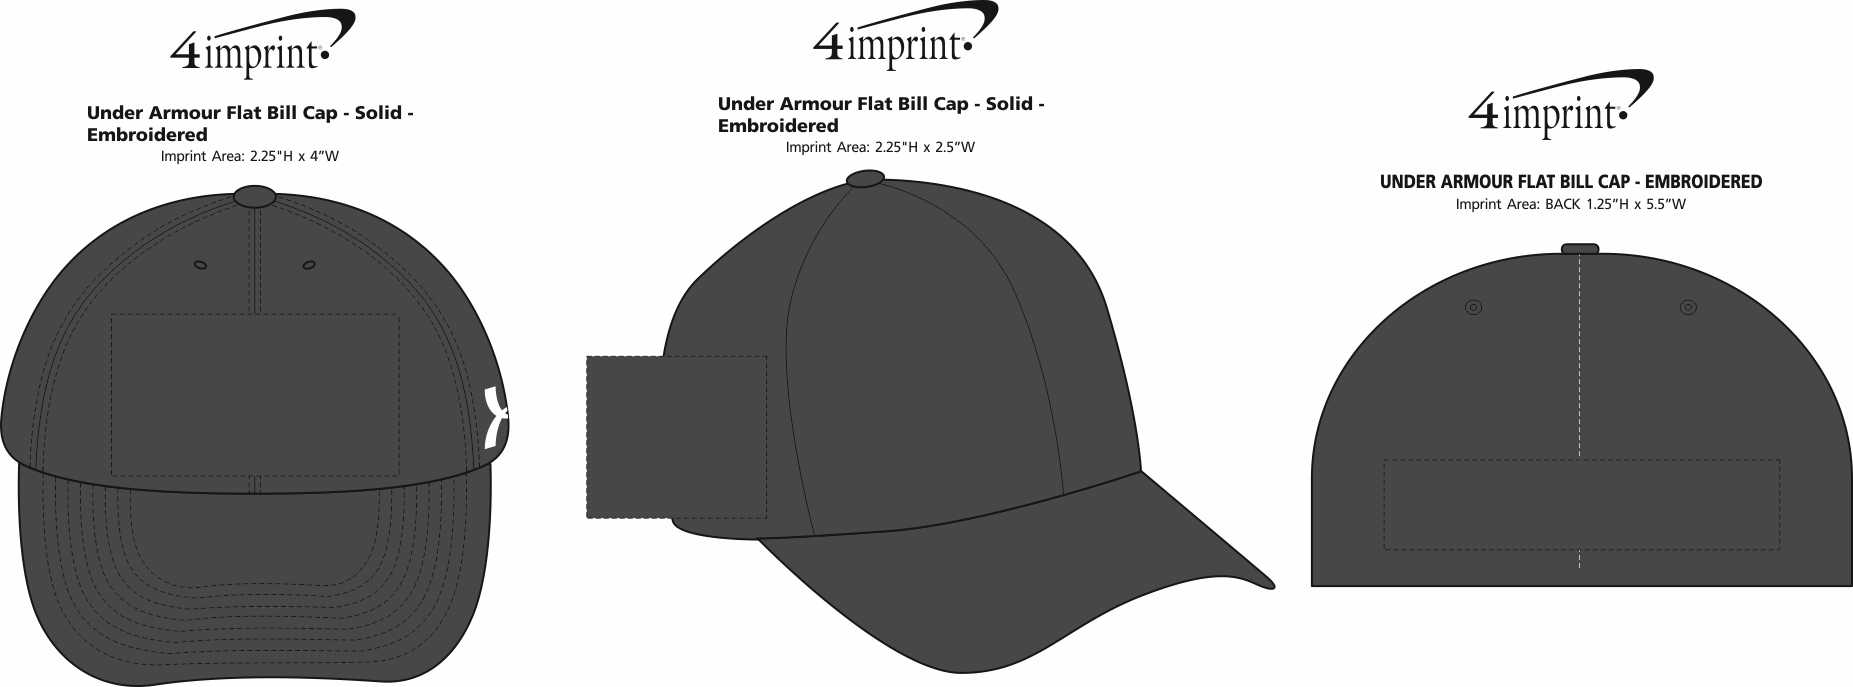 Imprint Area of Under Armour Flat Bill Cap - Solid - Embroidered